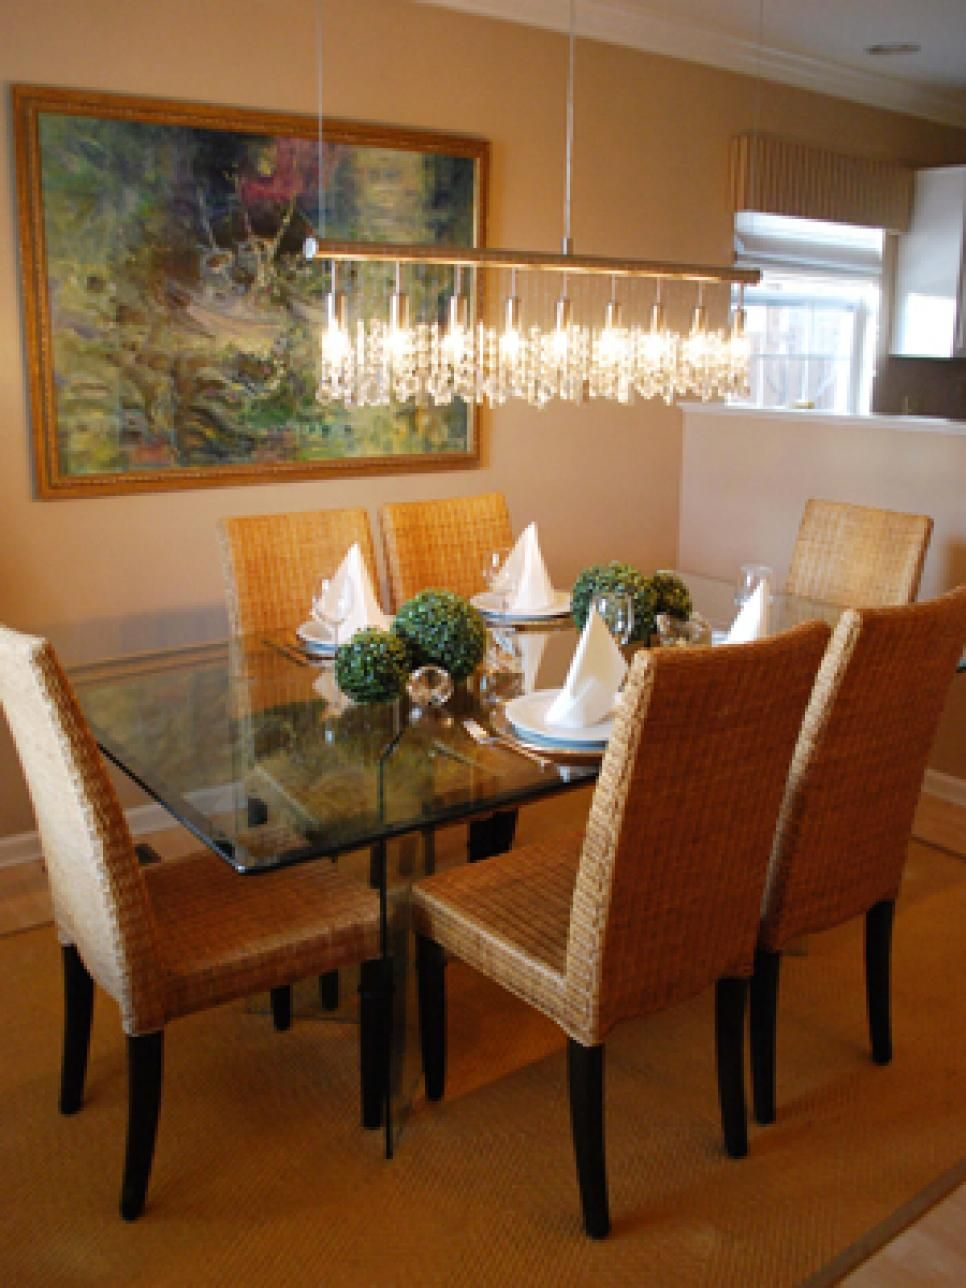 Hgtv Dining Room Ideas Part - 23: Check Out These Stylish Yet Inexpensive Spaces From Fellow Rate My Space  Users.